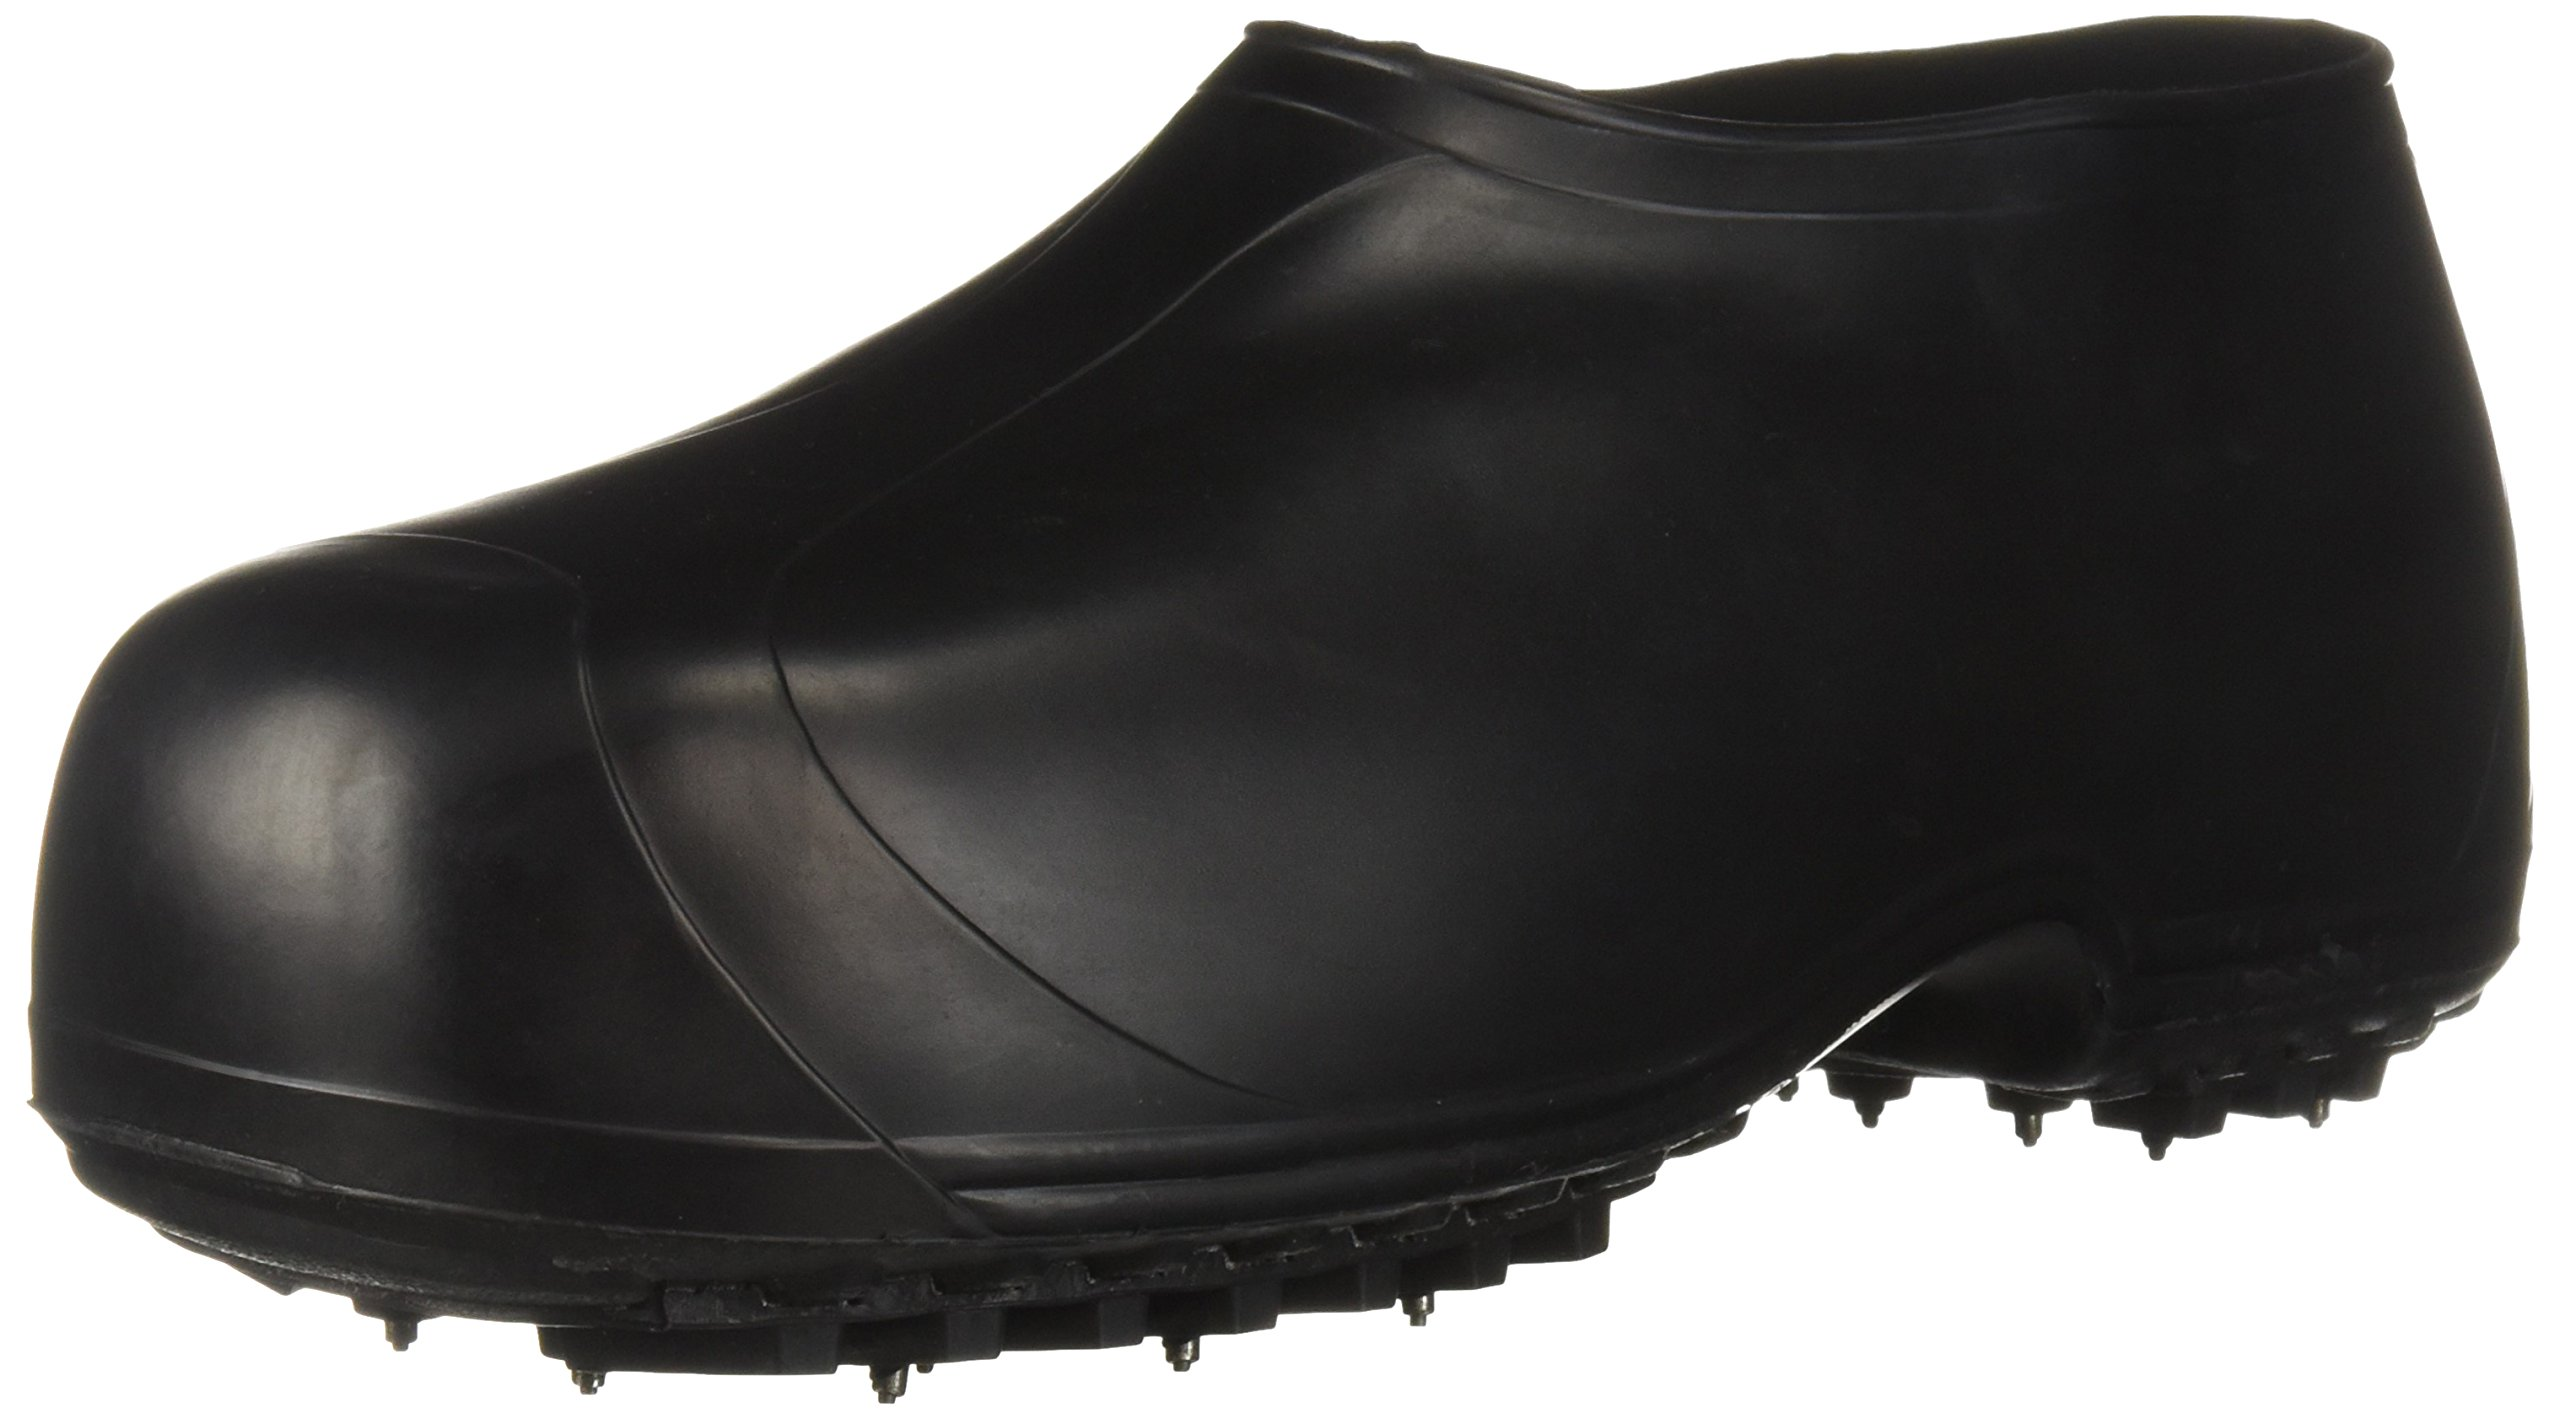 WINTER-TUFF 1350.LG Hi-Top Rubber Cleated/Studded Outsole Boot, Large, Black by Winter Tuff